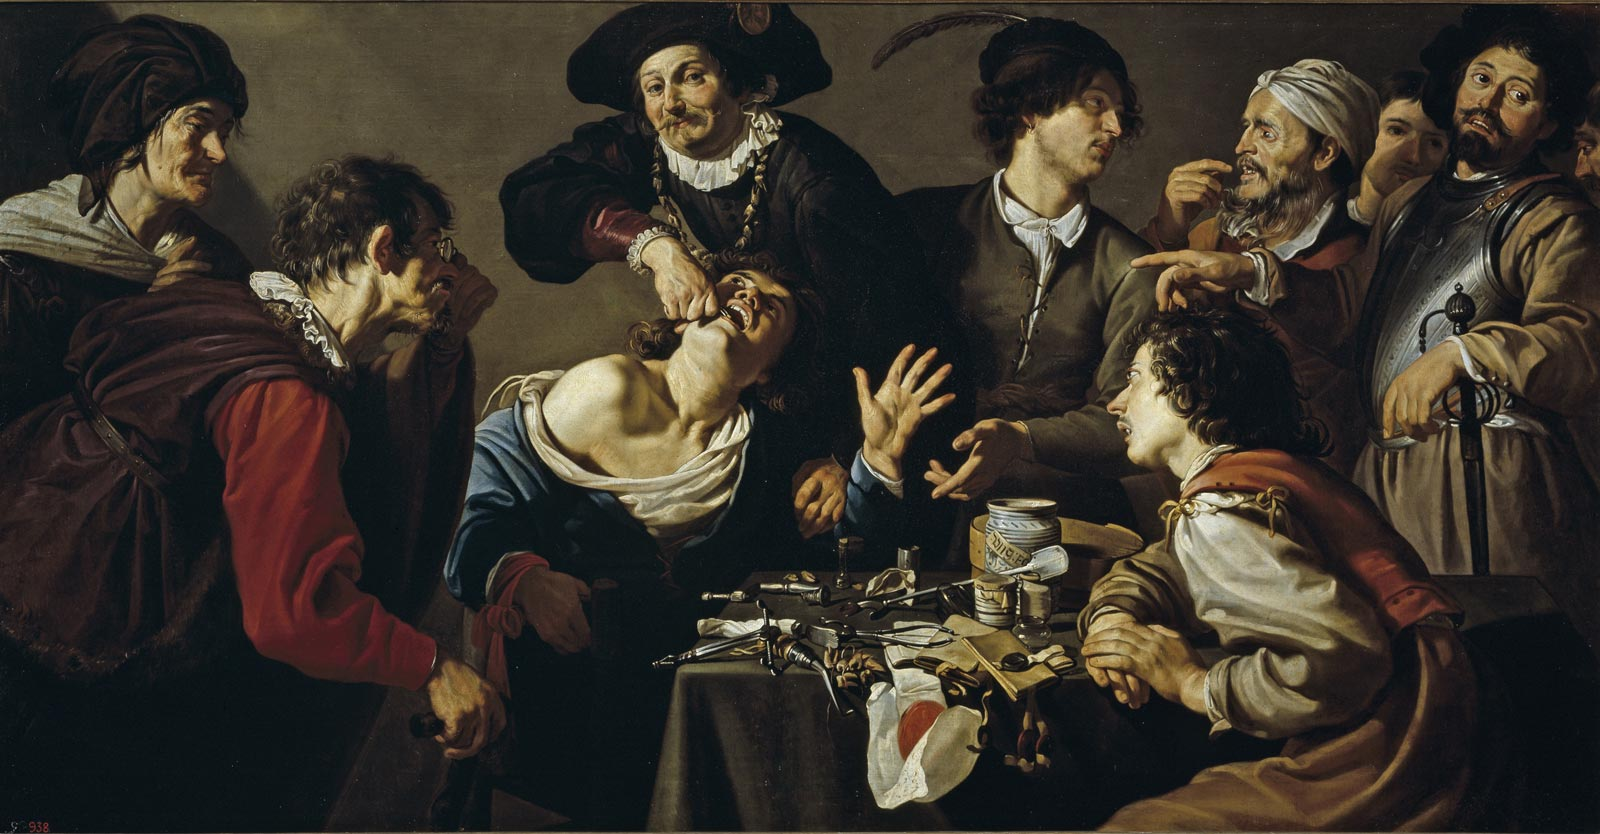 Theodoor Rombouts, The quack tooth puller, 1620 - 1625